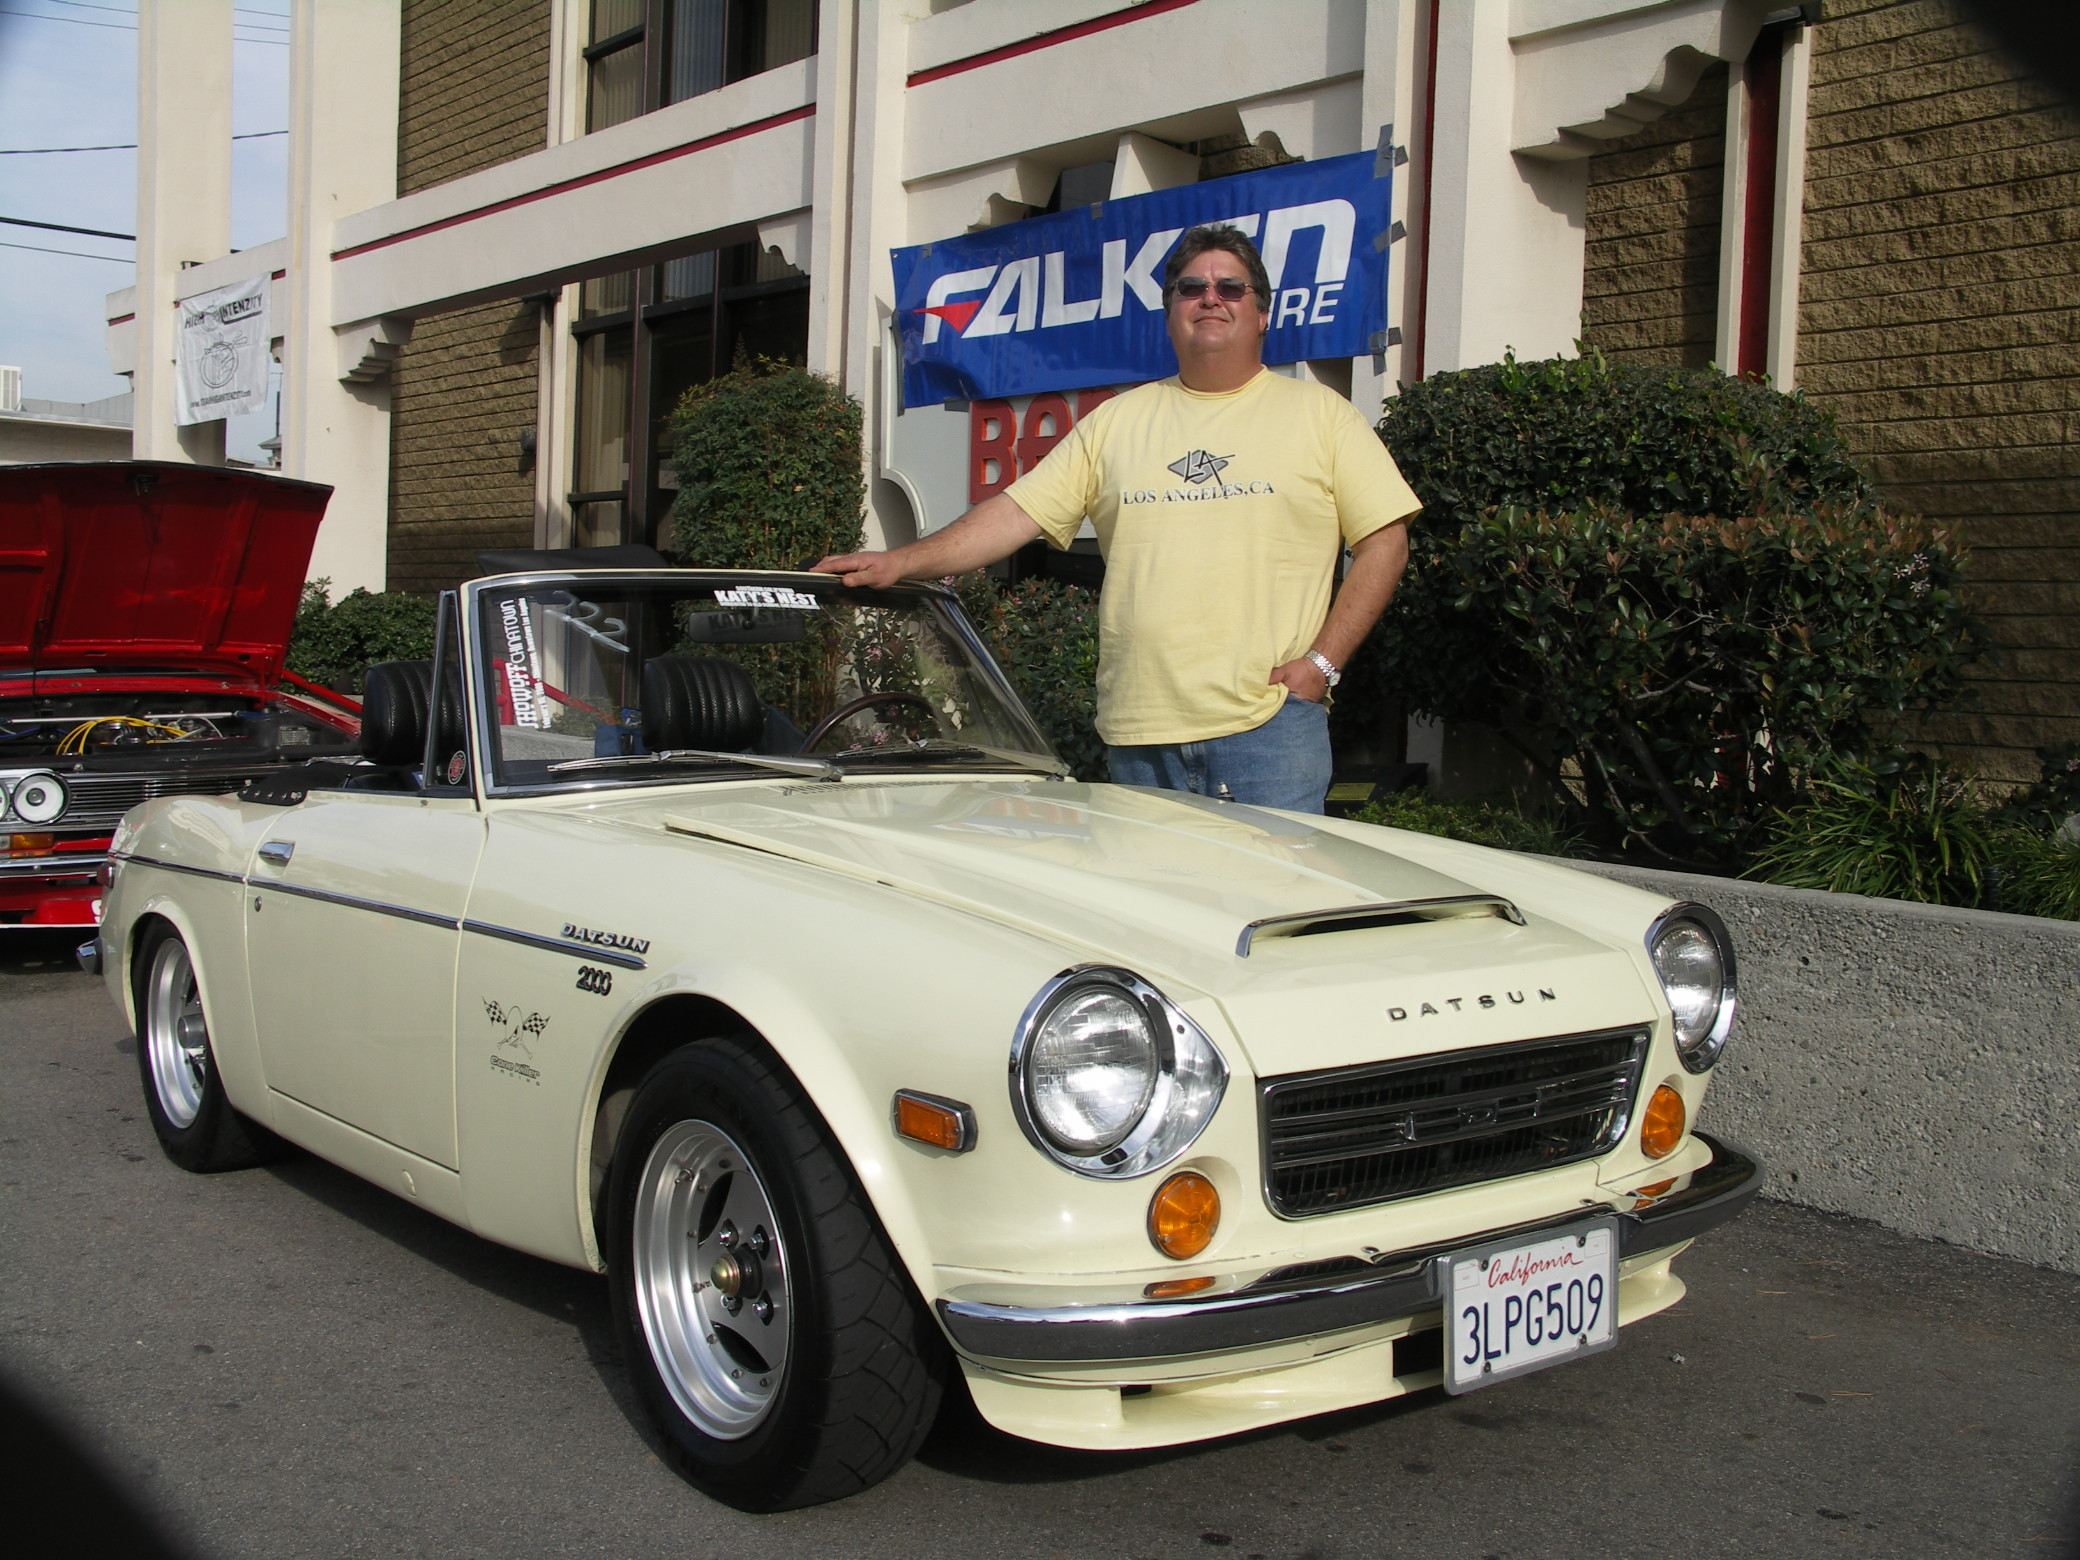 Donate $100 for a chance to own Victor Laury's 1970 Datsun ...